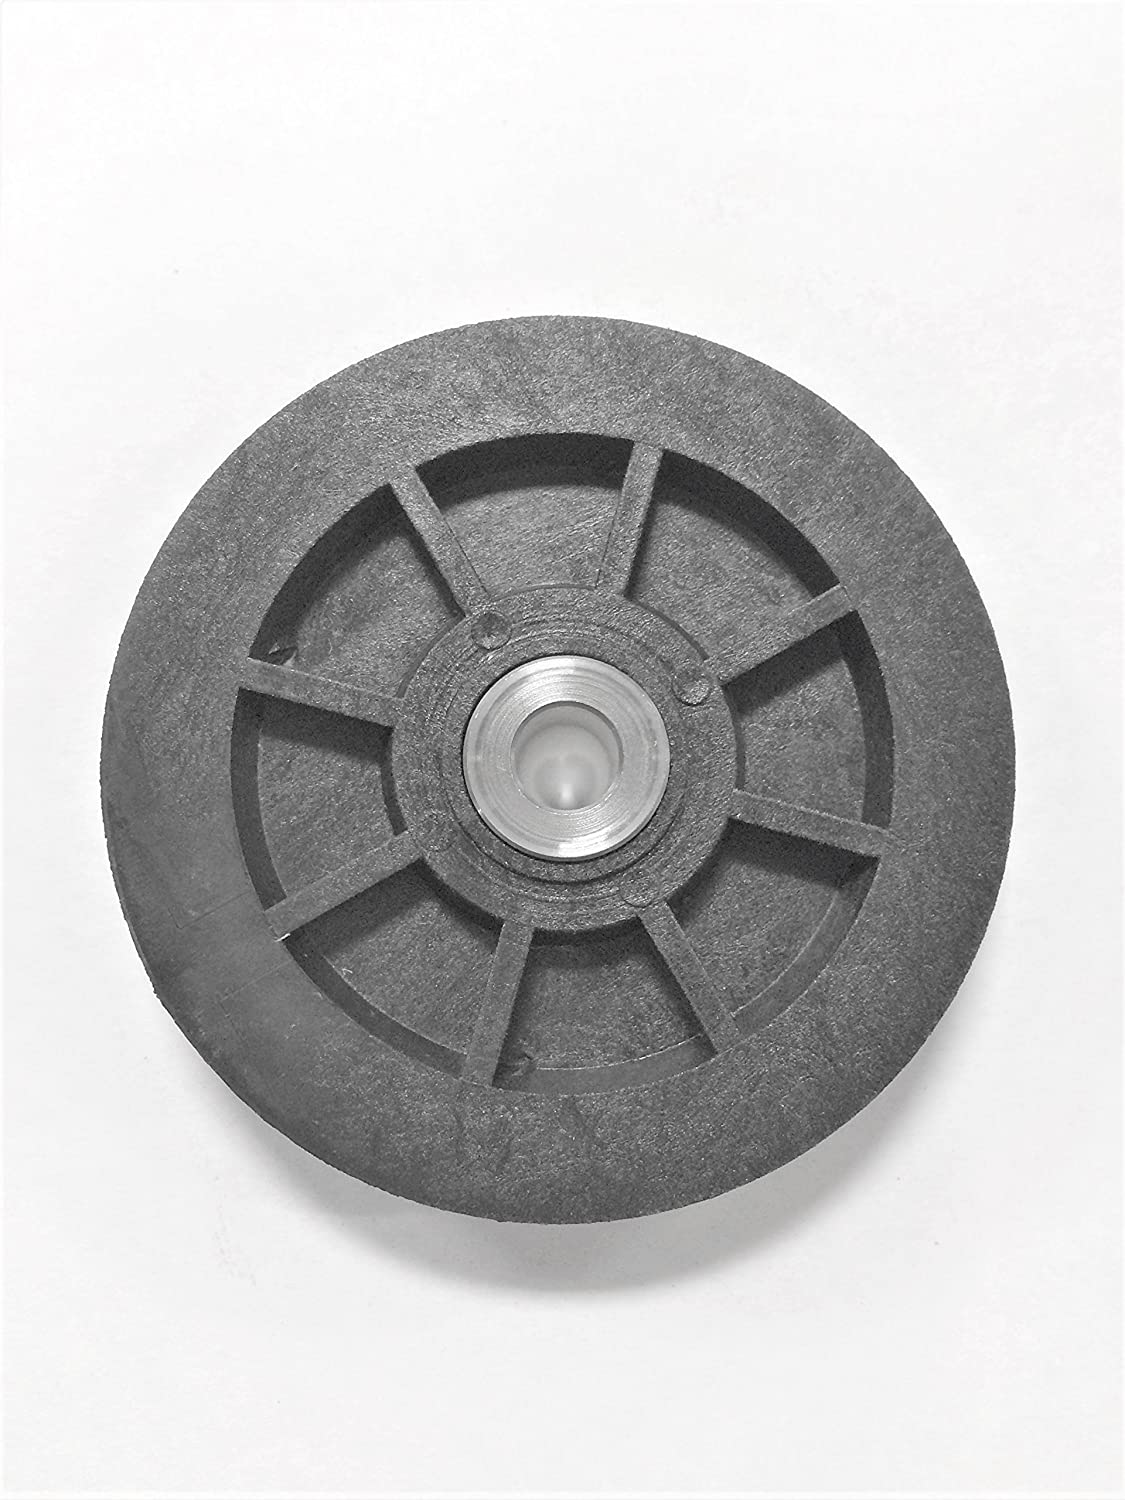 3 Lifetime Pulley Nylon Sheave with .375 inch ID Stainless Steel Bushing